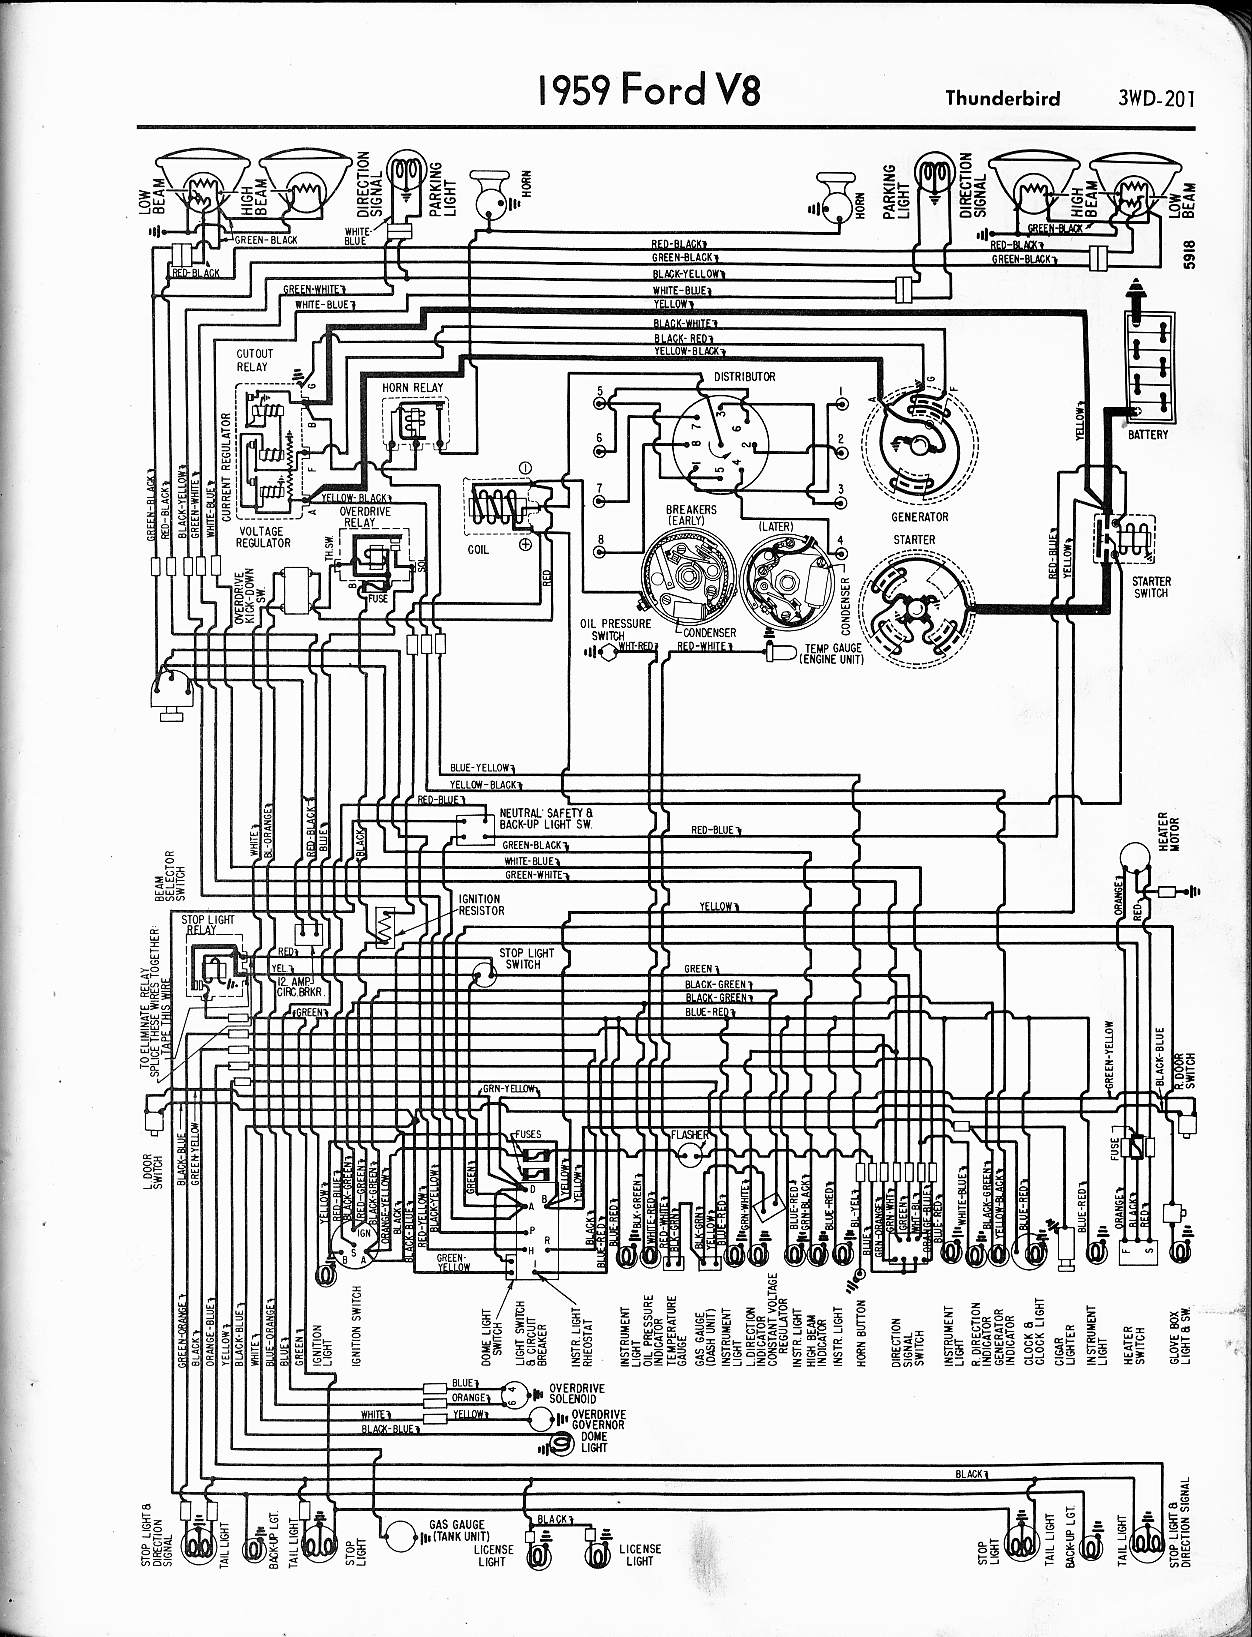 1959 Ford Wagon Wiring Diagram Wiring Diagram Portal